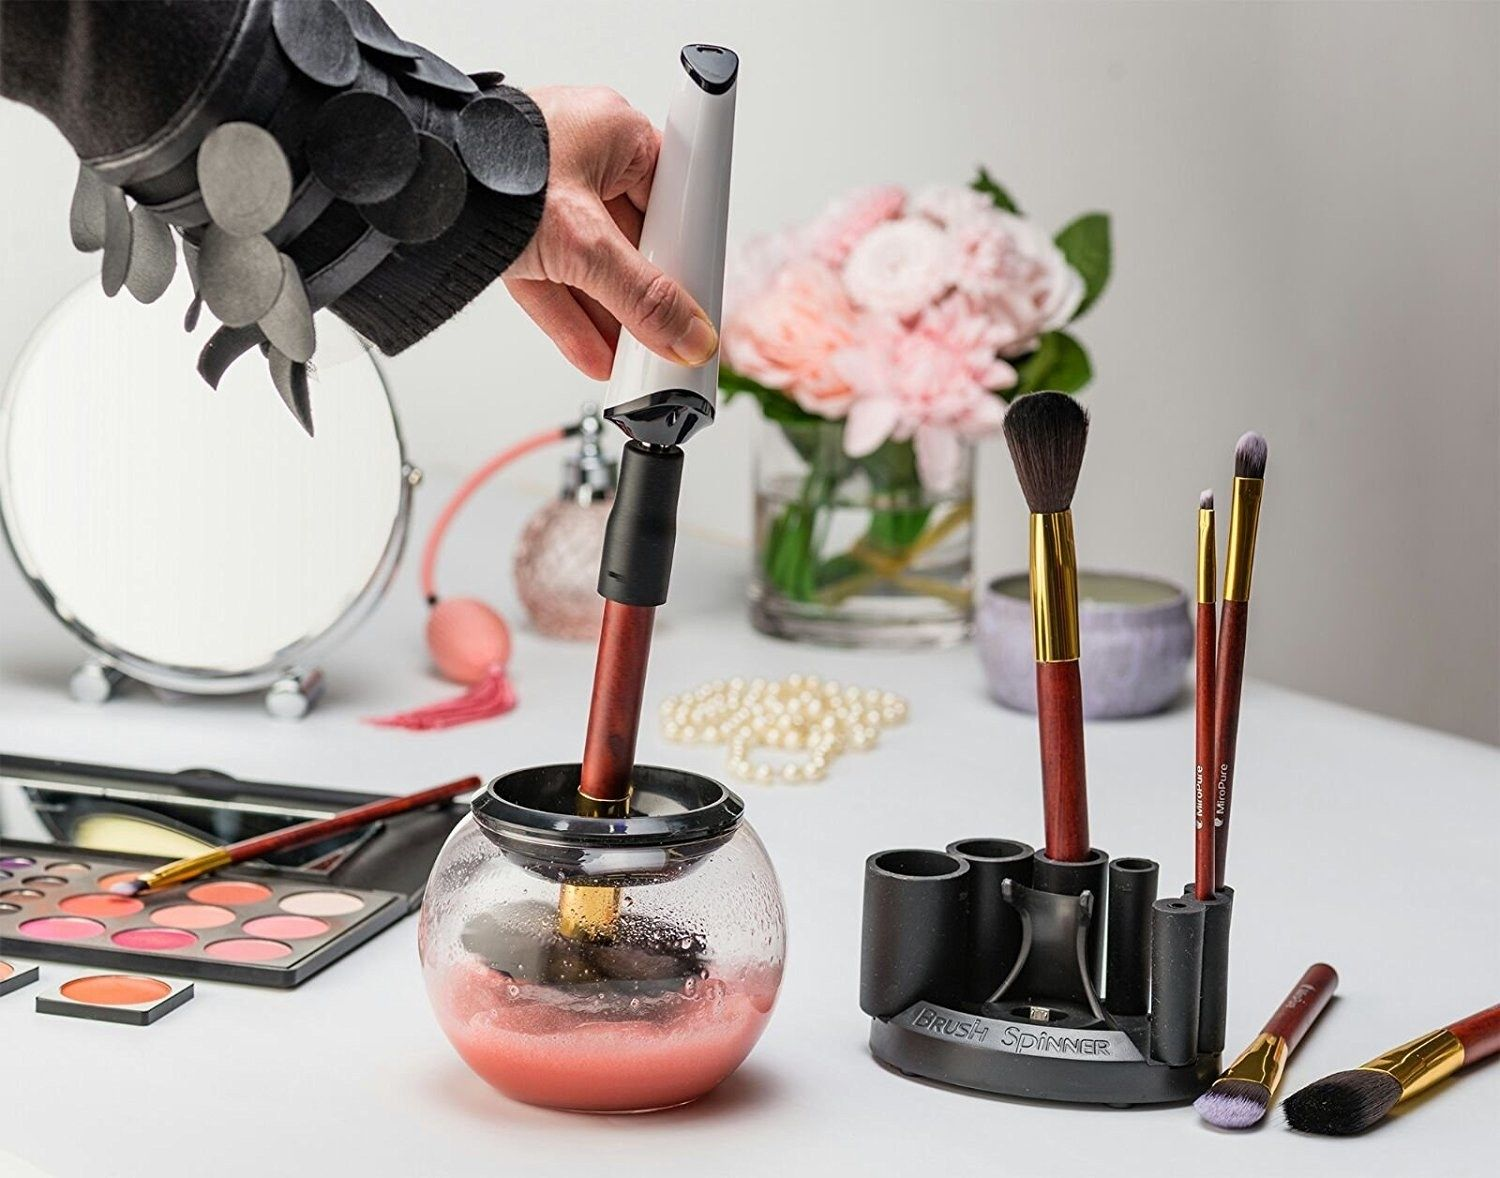 19 Of The Coolest Things On Amazon Launchpad Right Now is part of Makeup brush cleaner, Brush cleaner, Cleaning gadgets, Makeup brushes, Makeup yourself, Wash n dry - Featuring an automated makeup brush cleaner, reusable smart notebook, foodie dice, and 16 other products you should check out ASAP